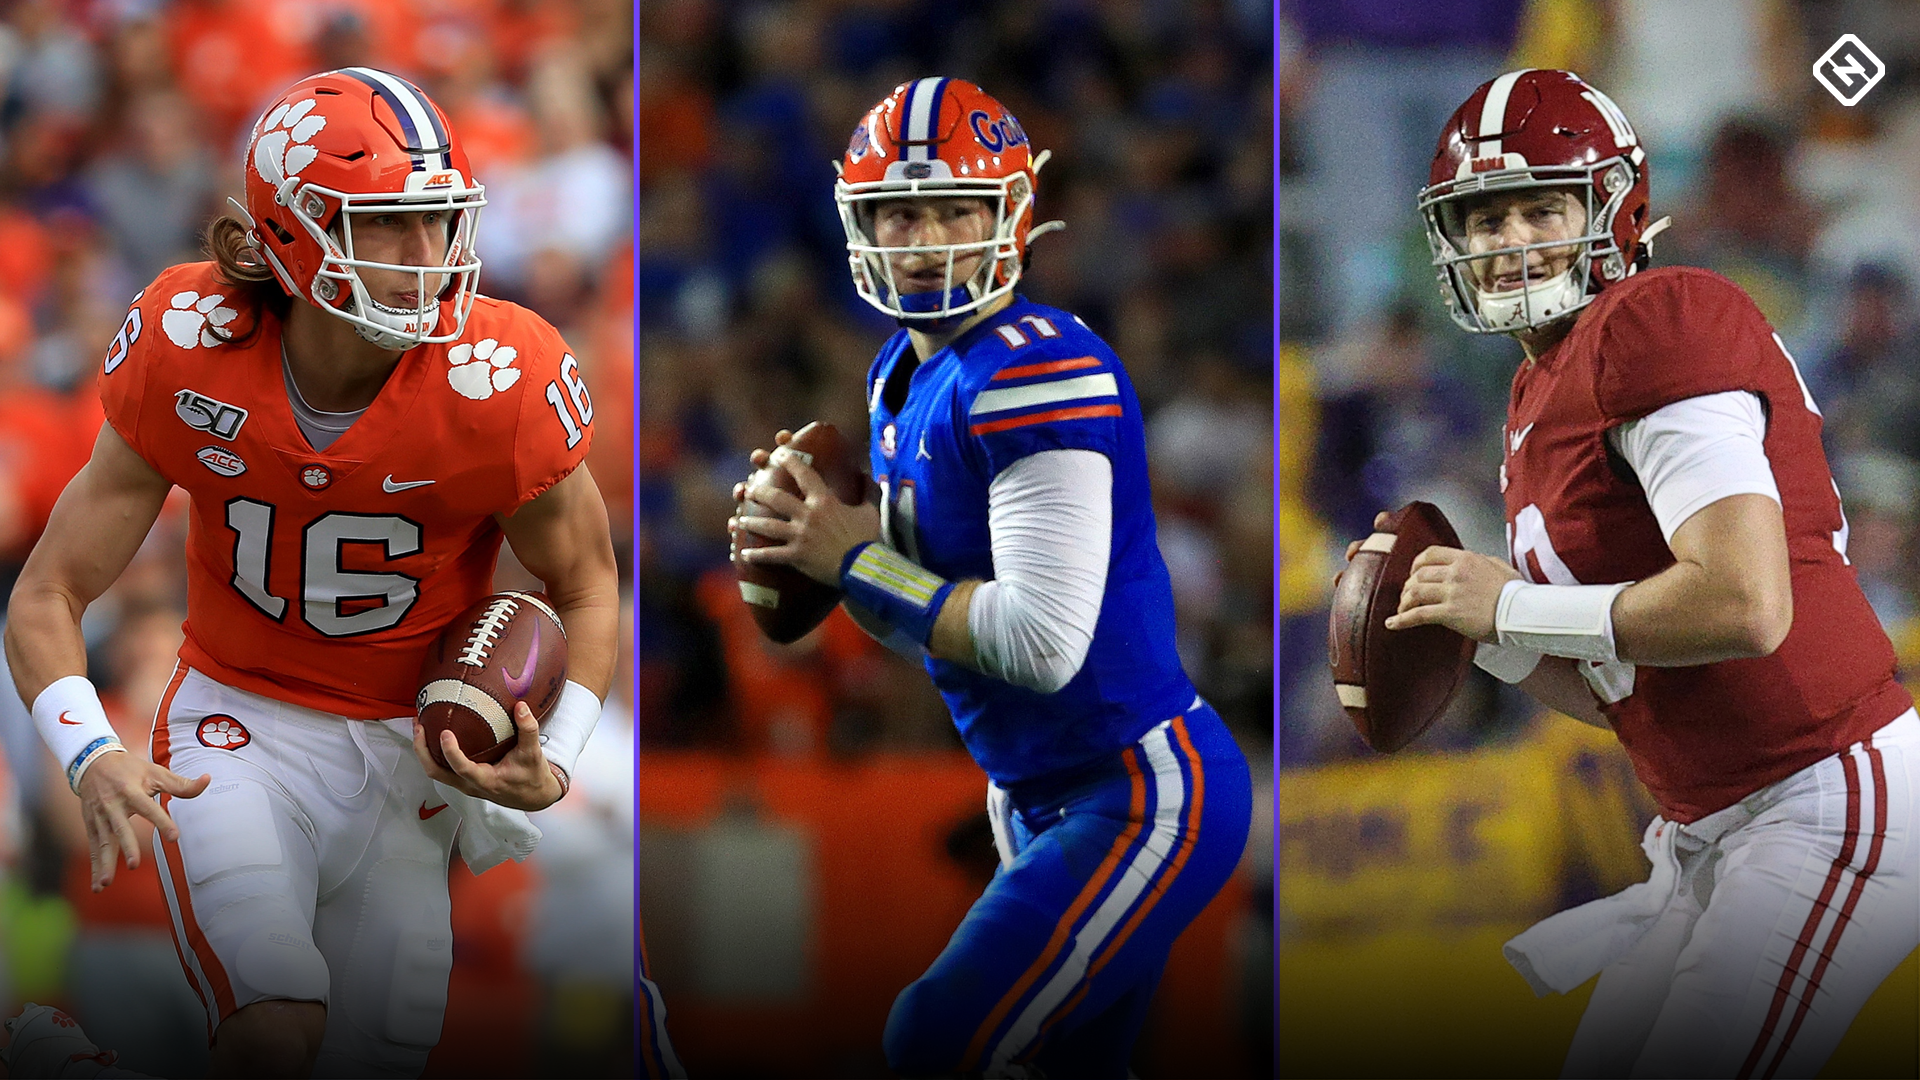 Heisman Trophy watch: Updated odds, top candidates to win 2020 award